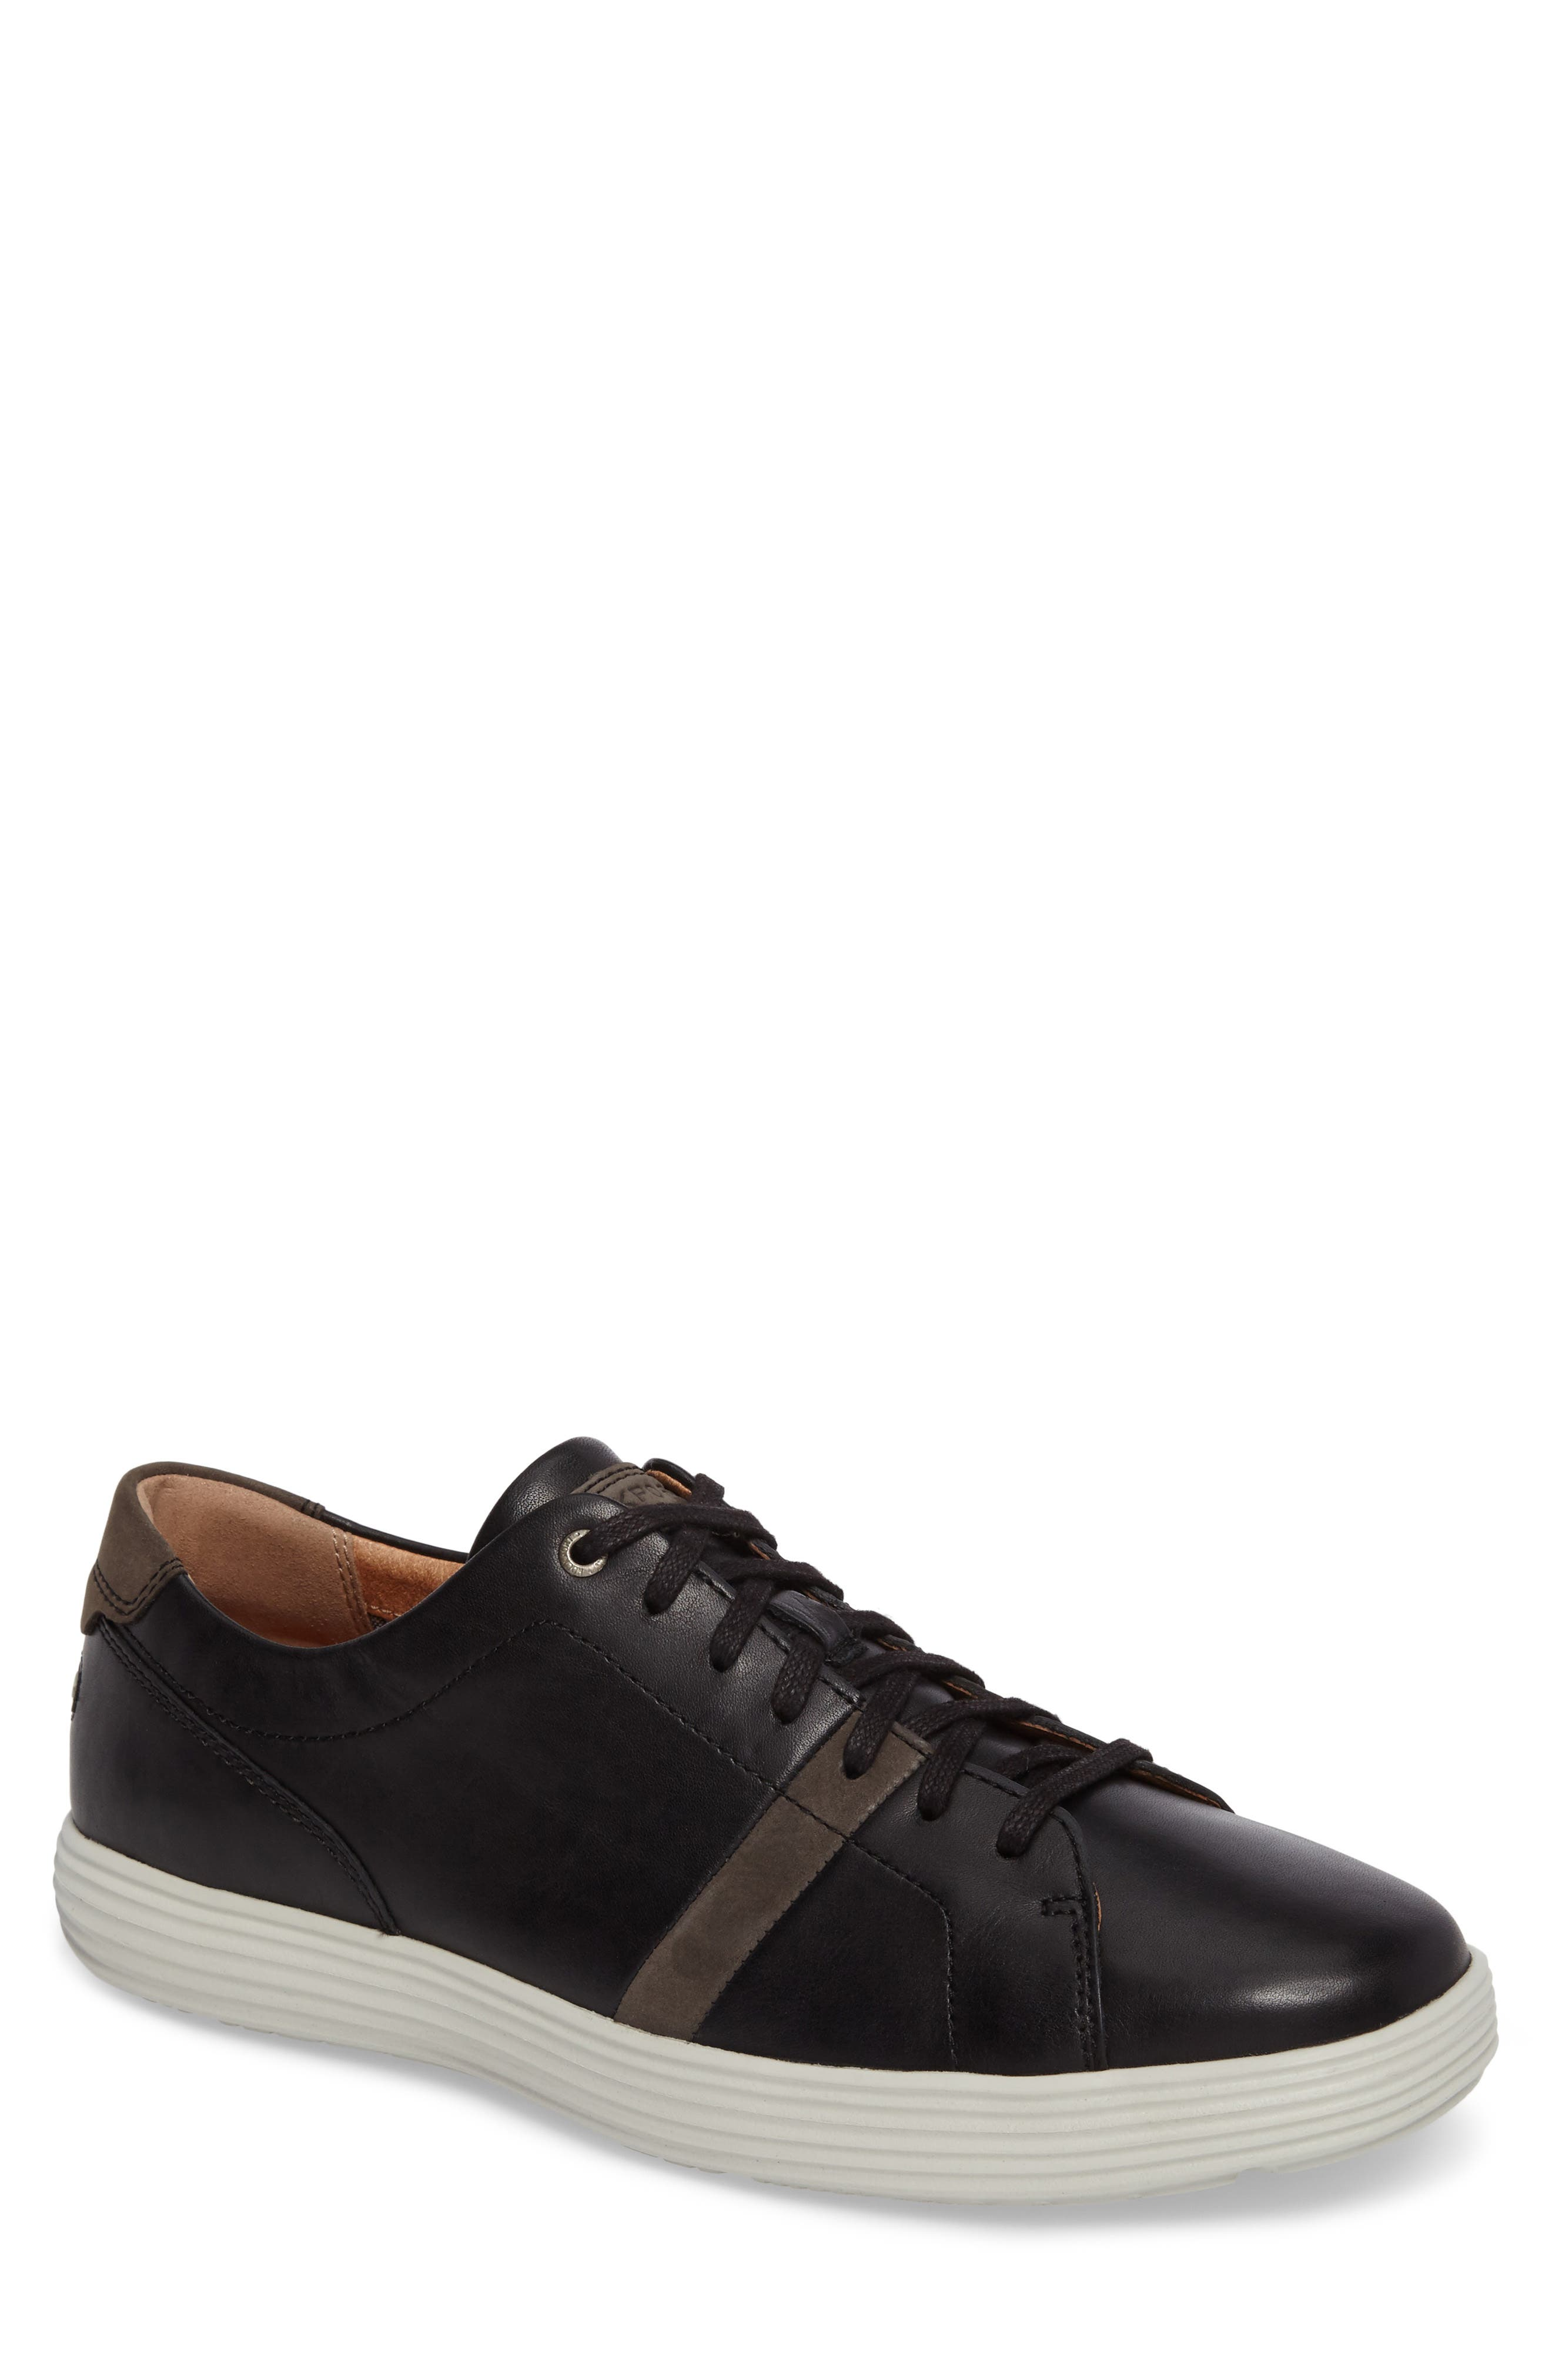 Thurston Sneaker,                             Main thumbnail 1, color,                             Black Leather